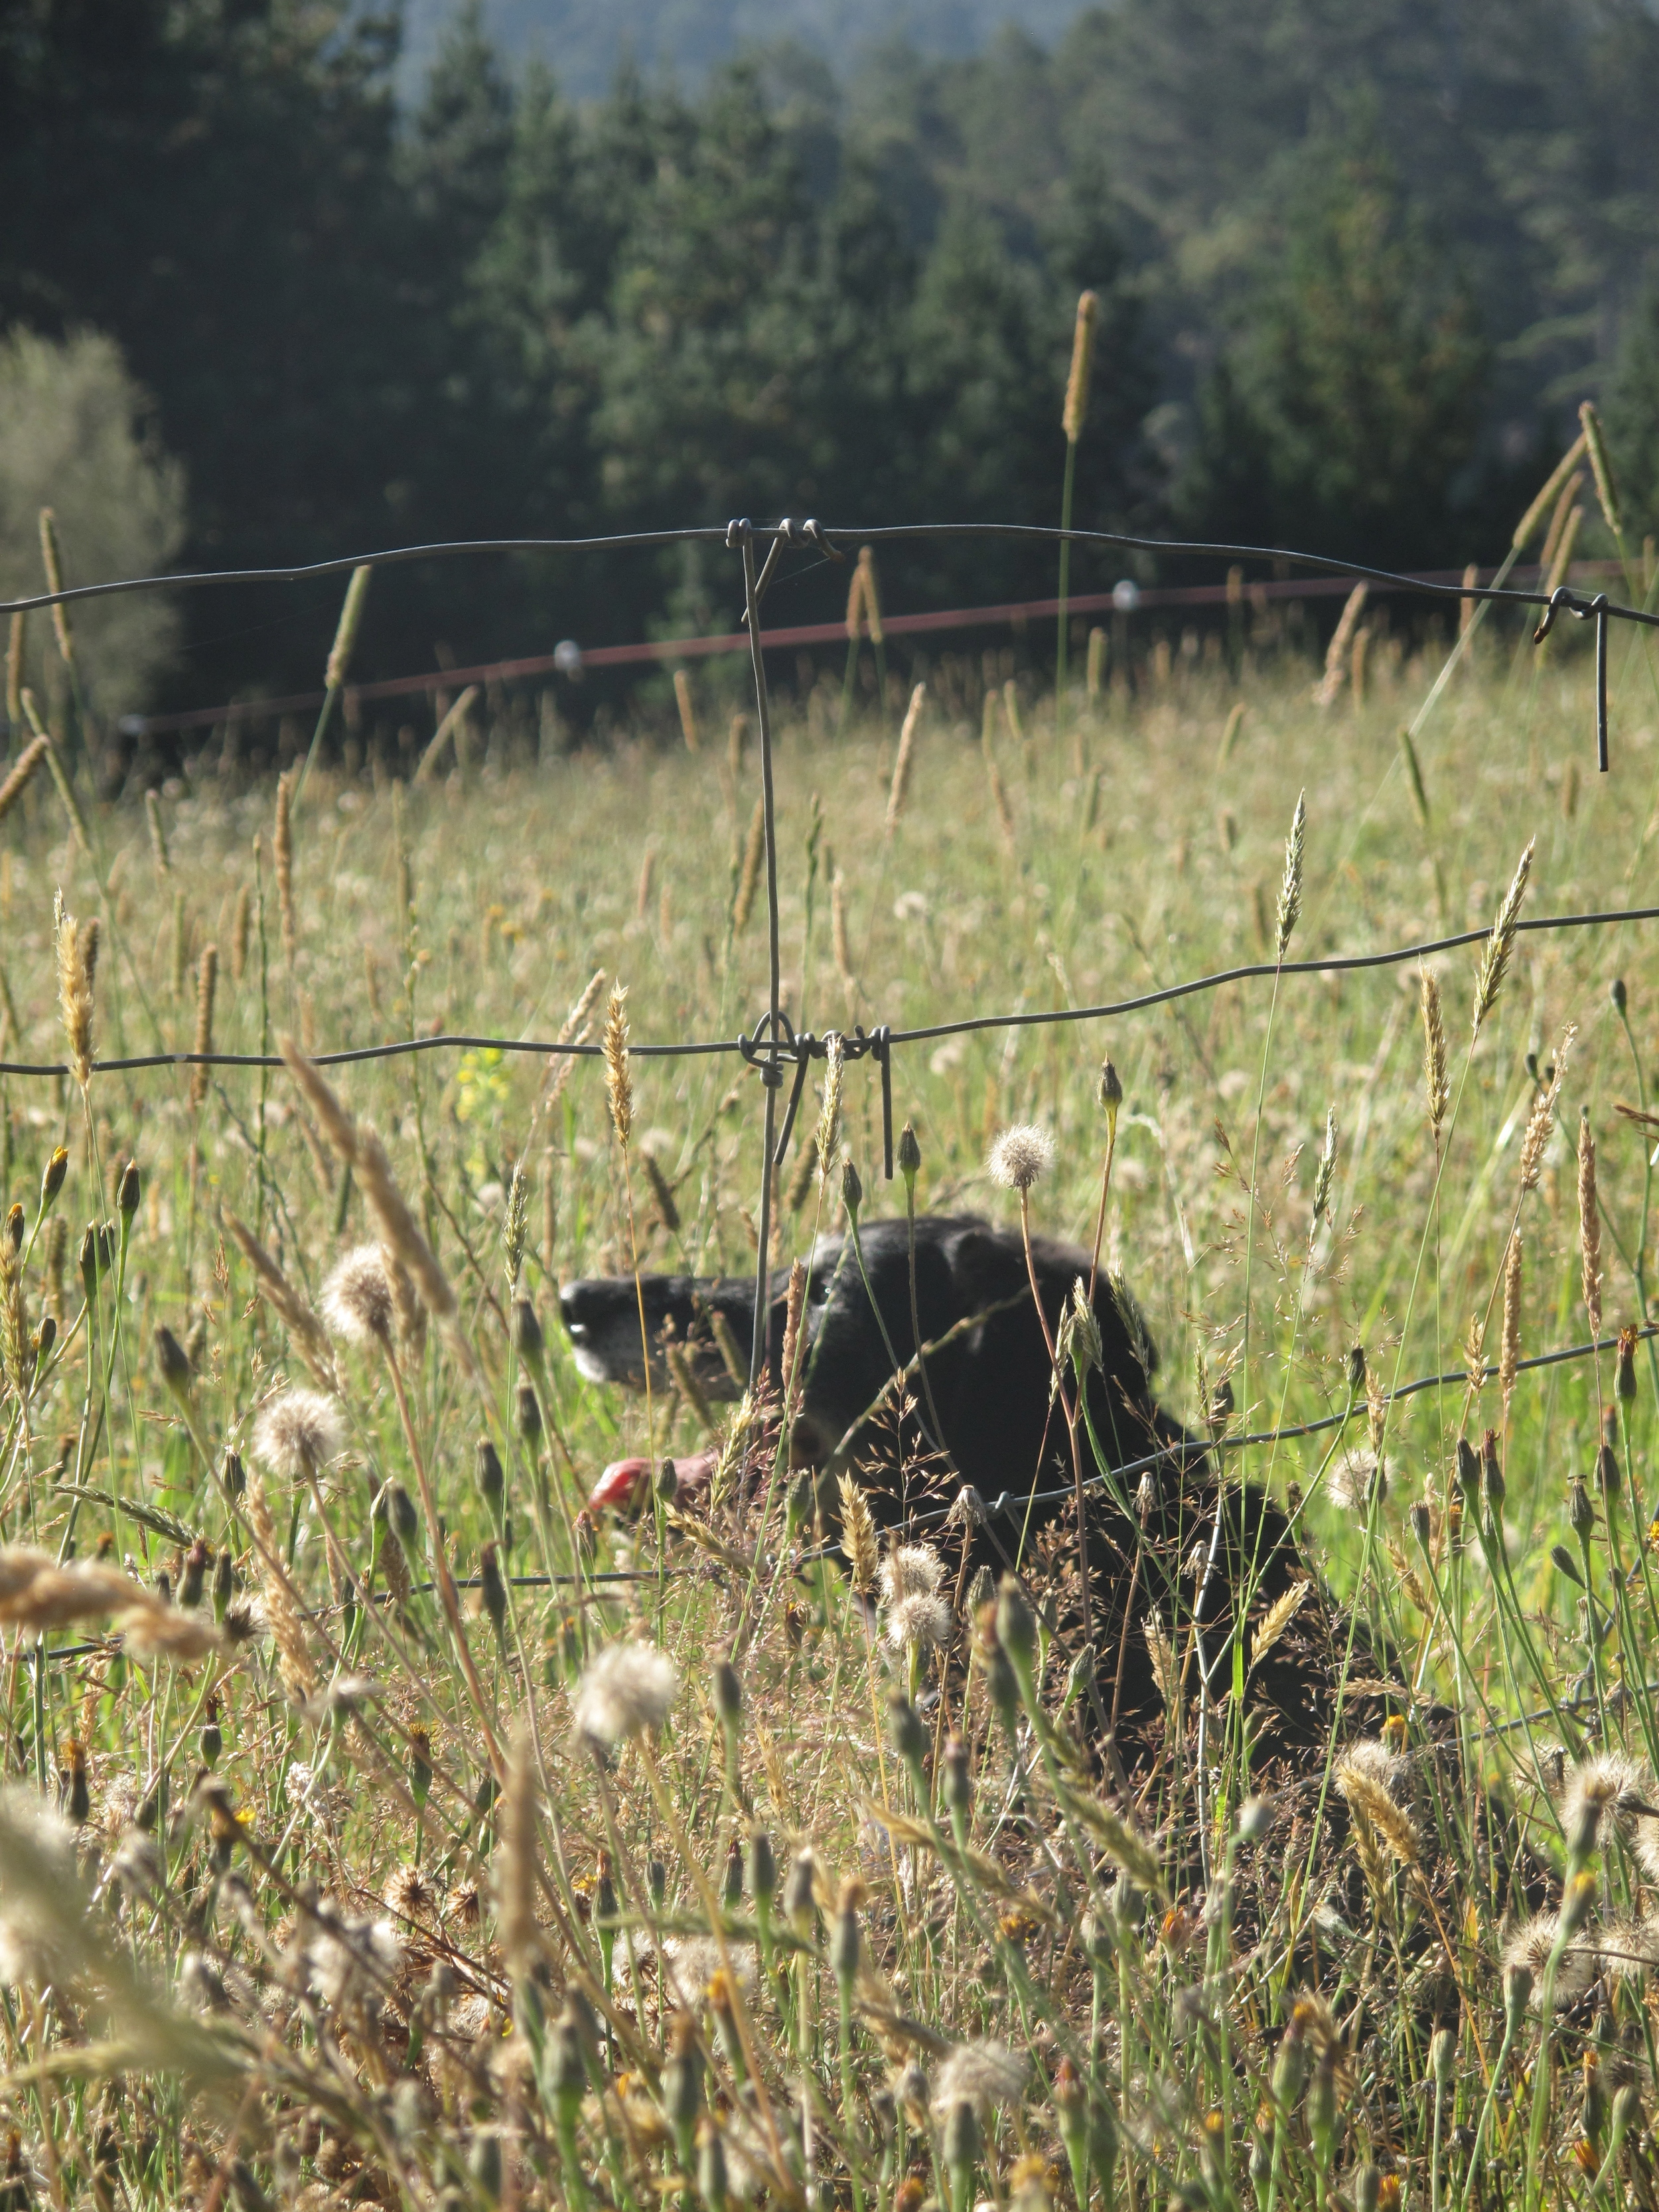 Dog in the long grasses and wheat of summer